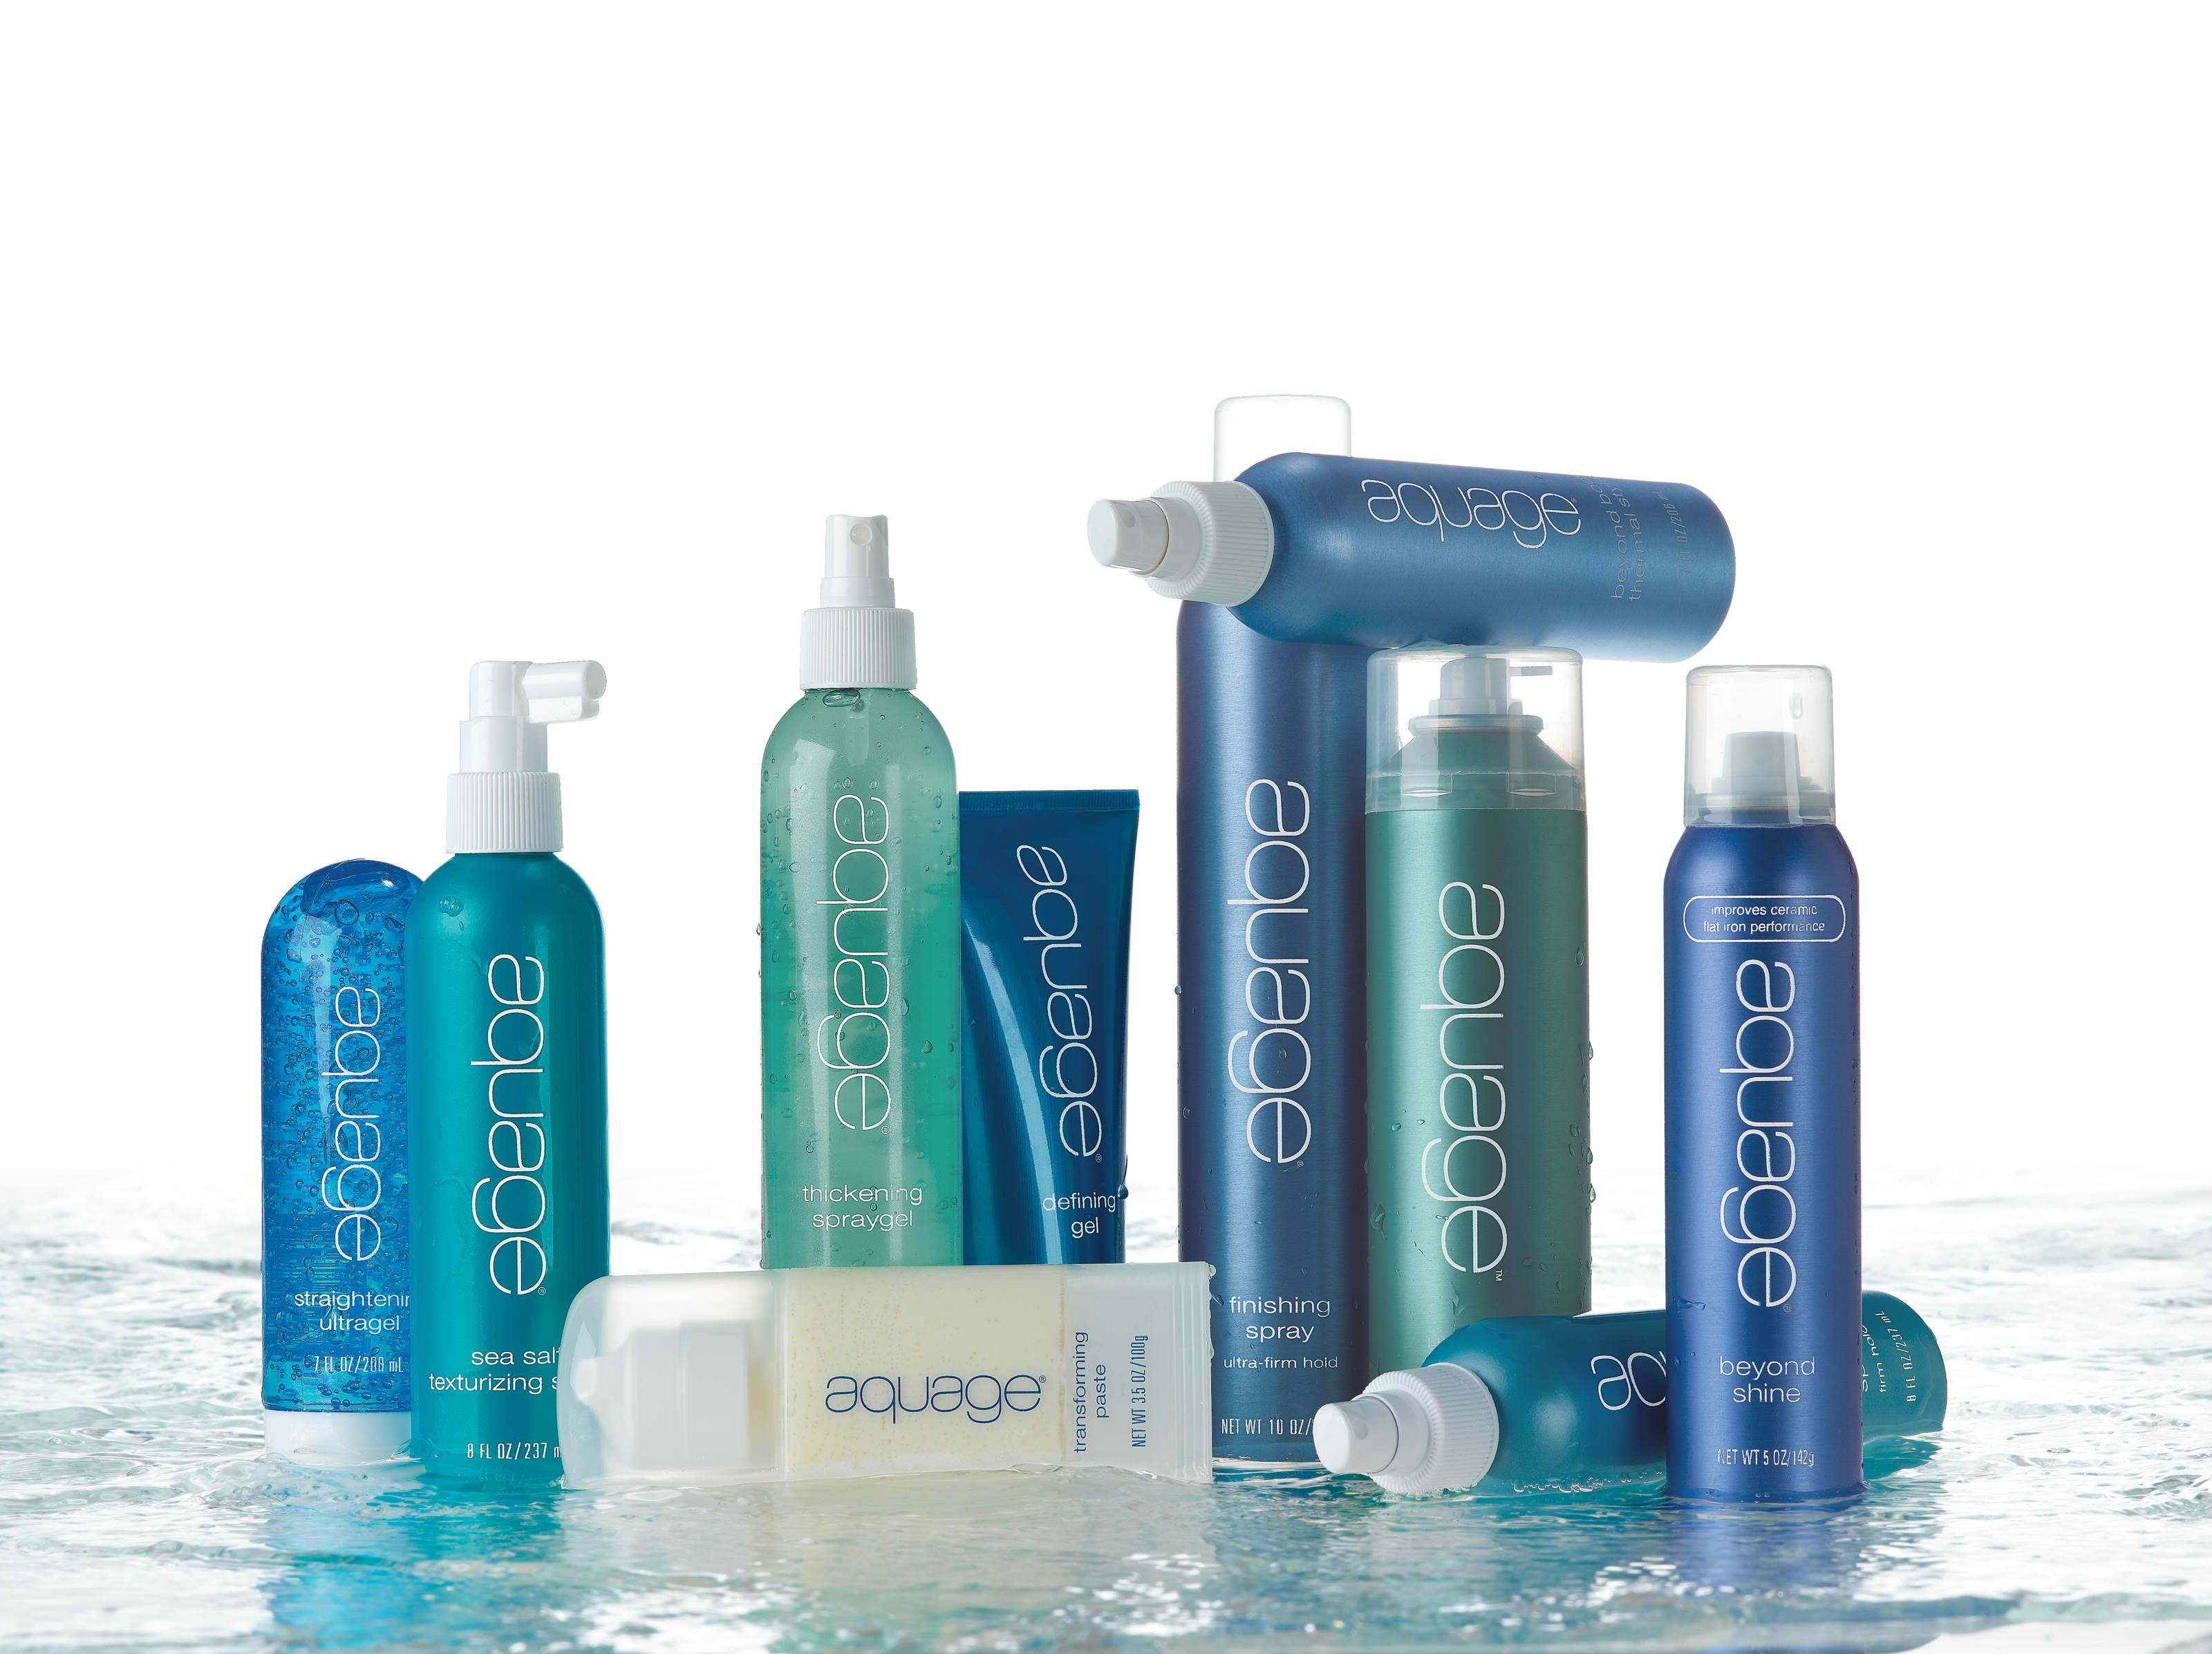 Aquage Hair Products..own the hairspray..love love love it